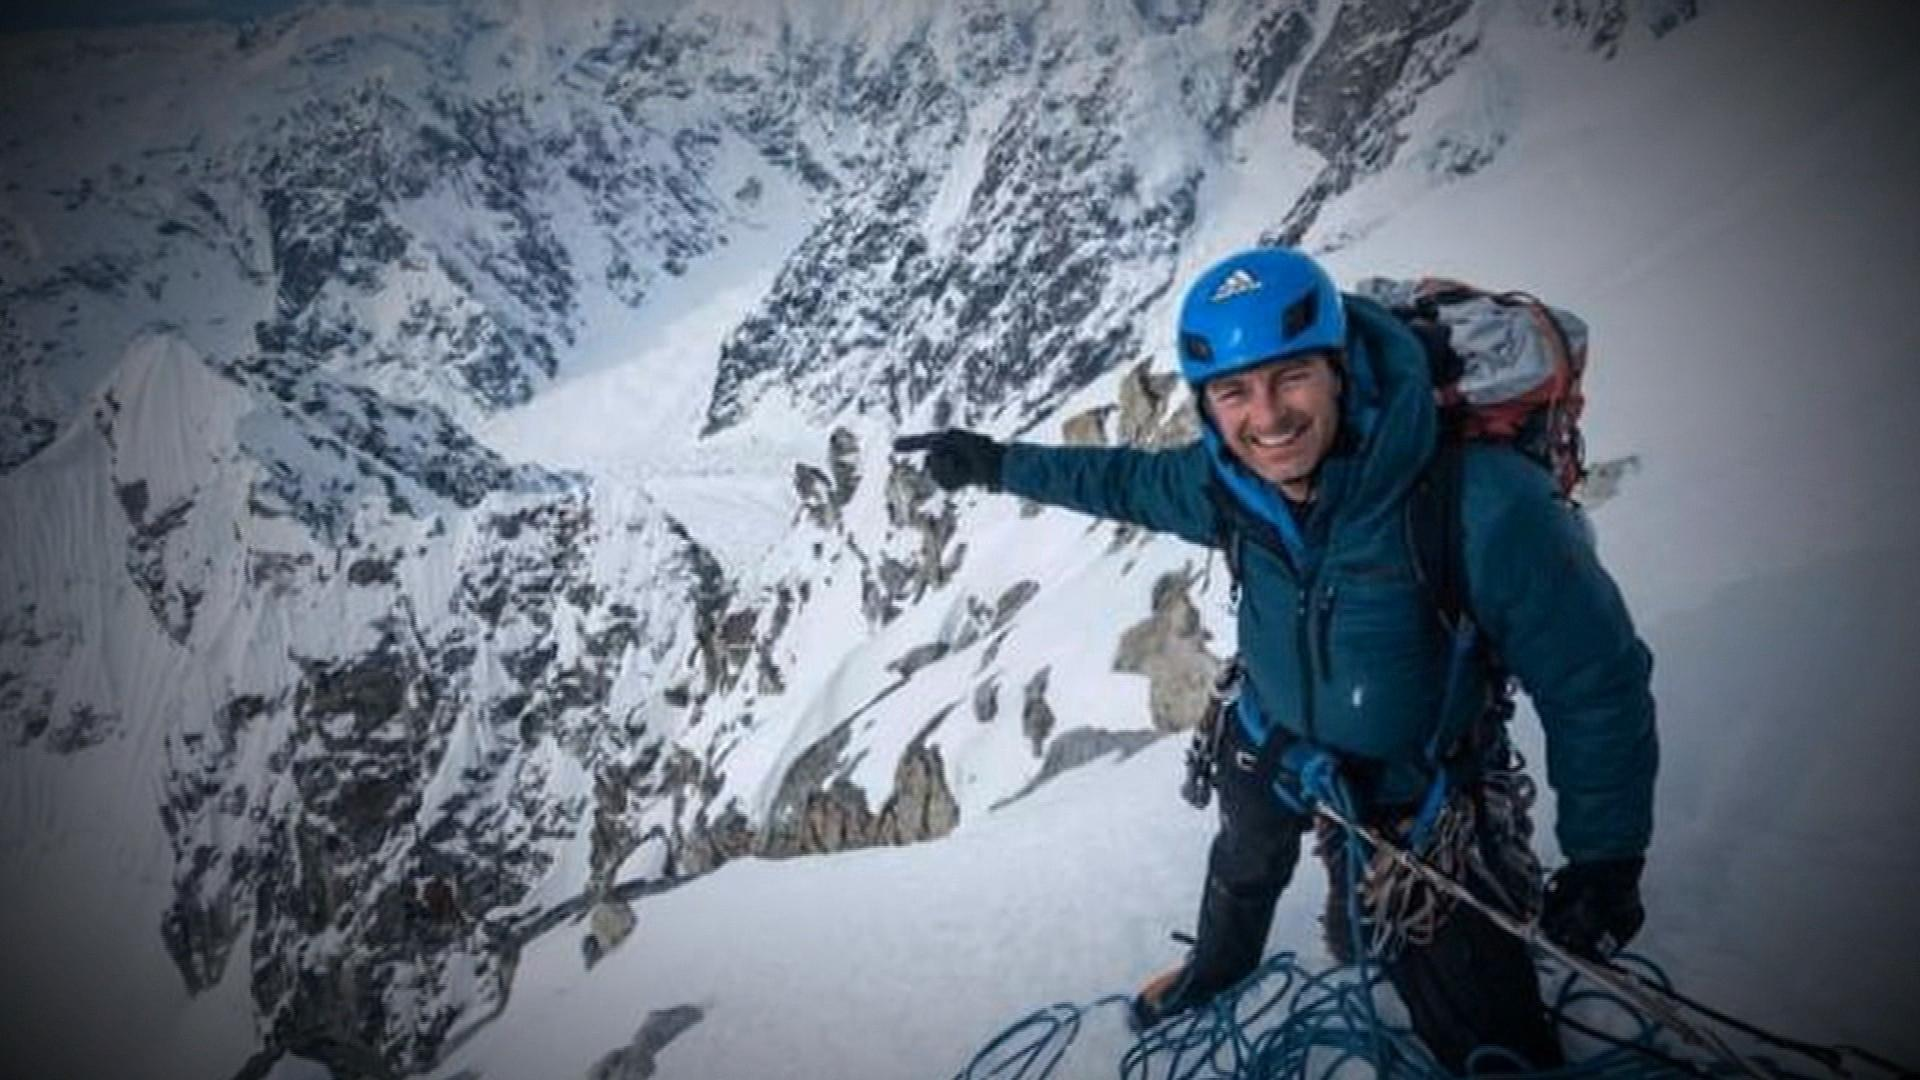 Family of climber presumed dead in avalanche